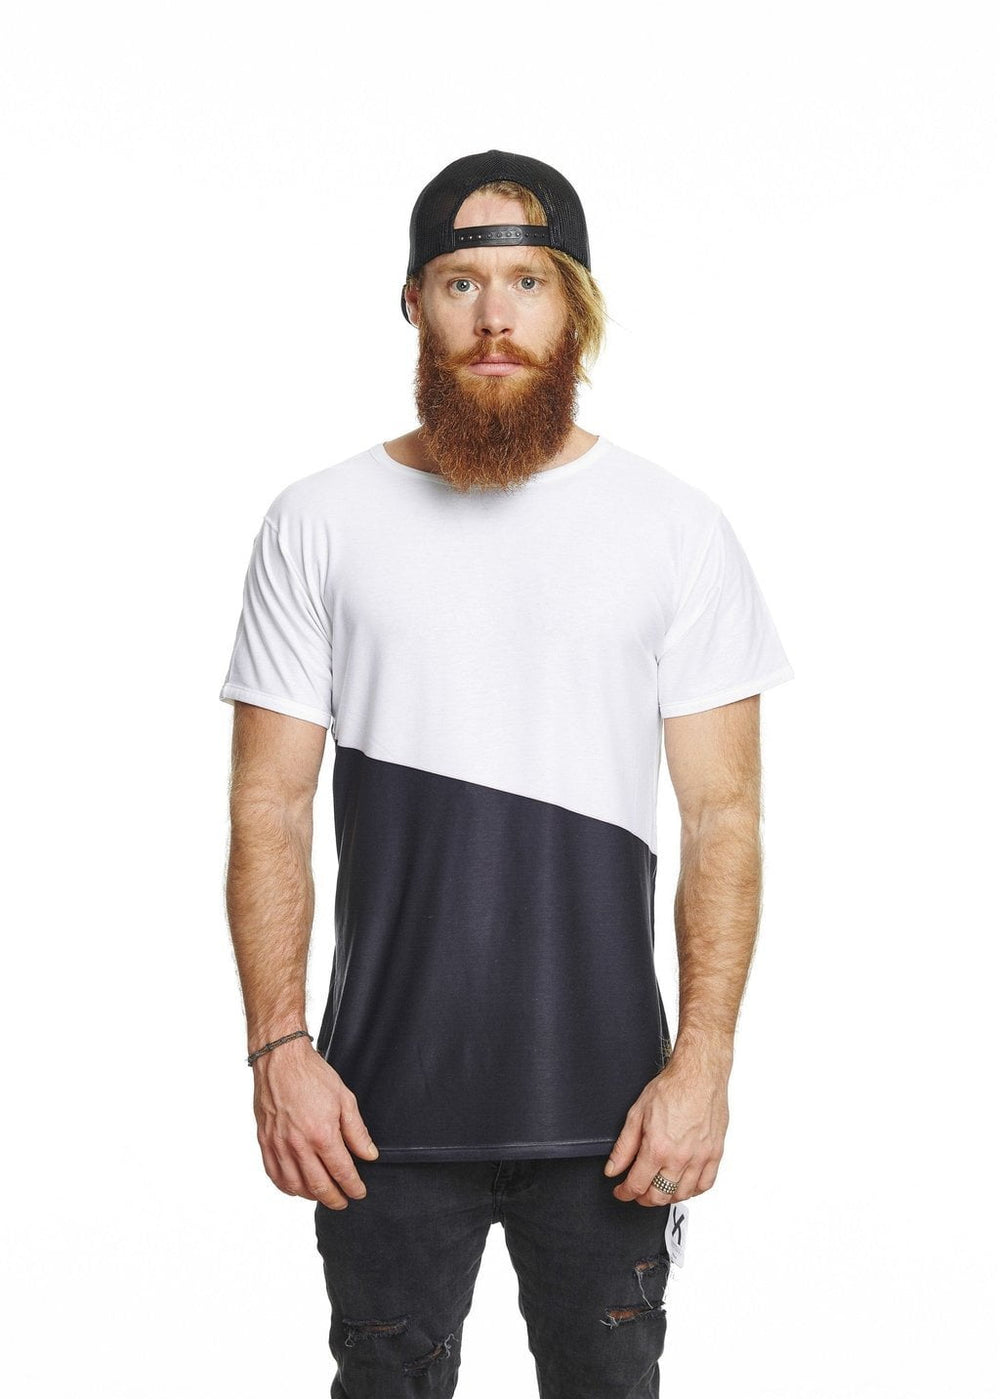 Fool - UZTZU 4-Ways Reversible T-Shirts